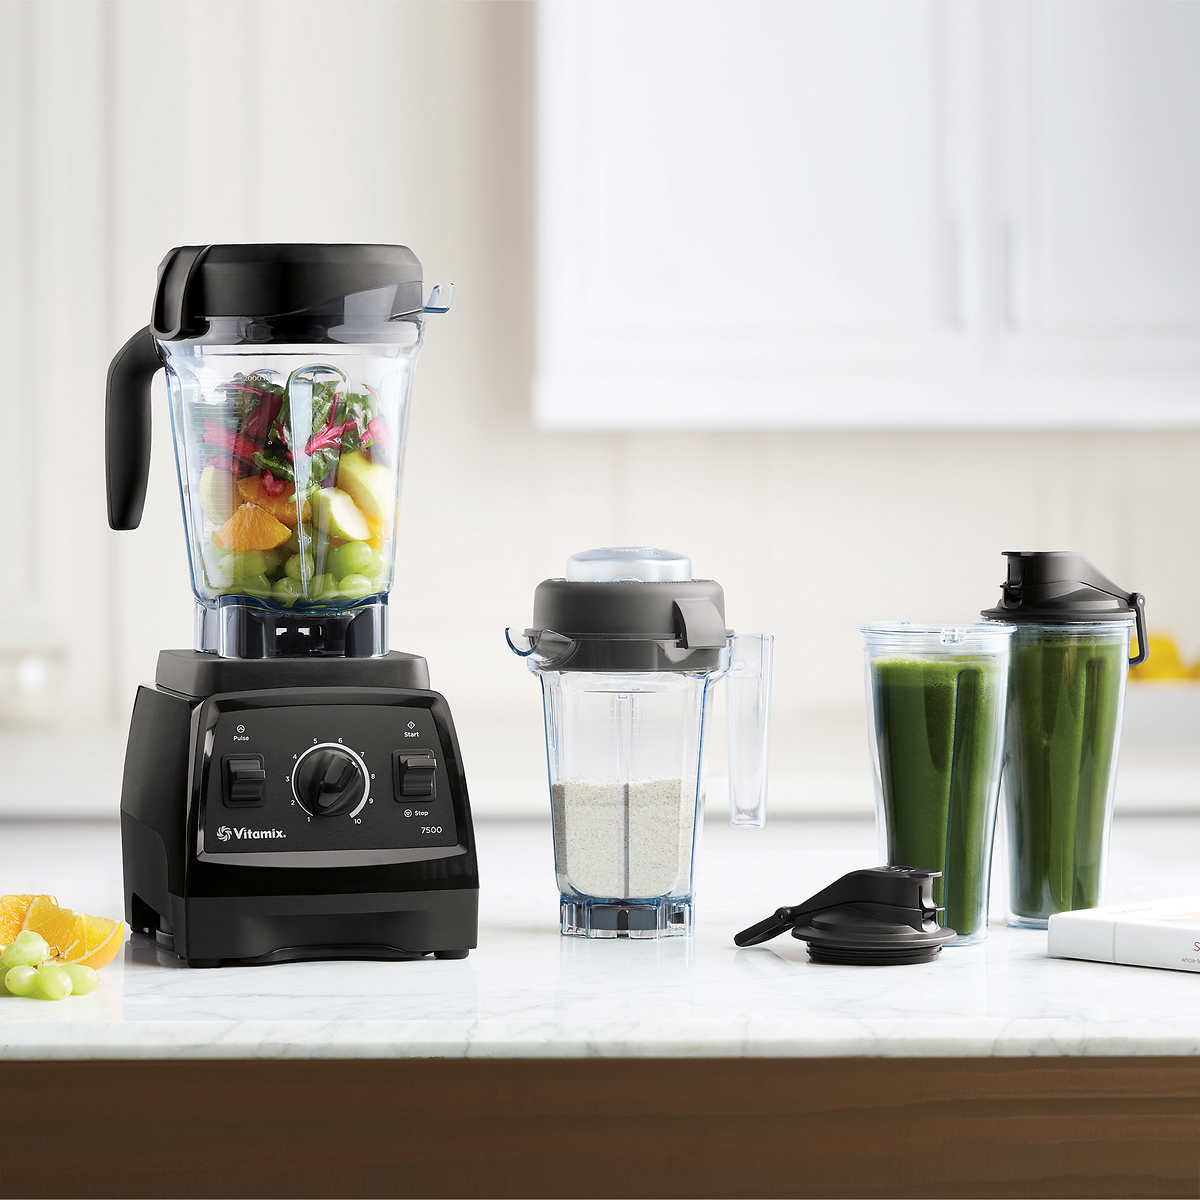 Uncategorized Costco Kitchen Appliances blenders juicers costco vitamix 7500 blender super package with 2 20oz to go cups